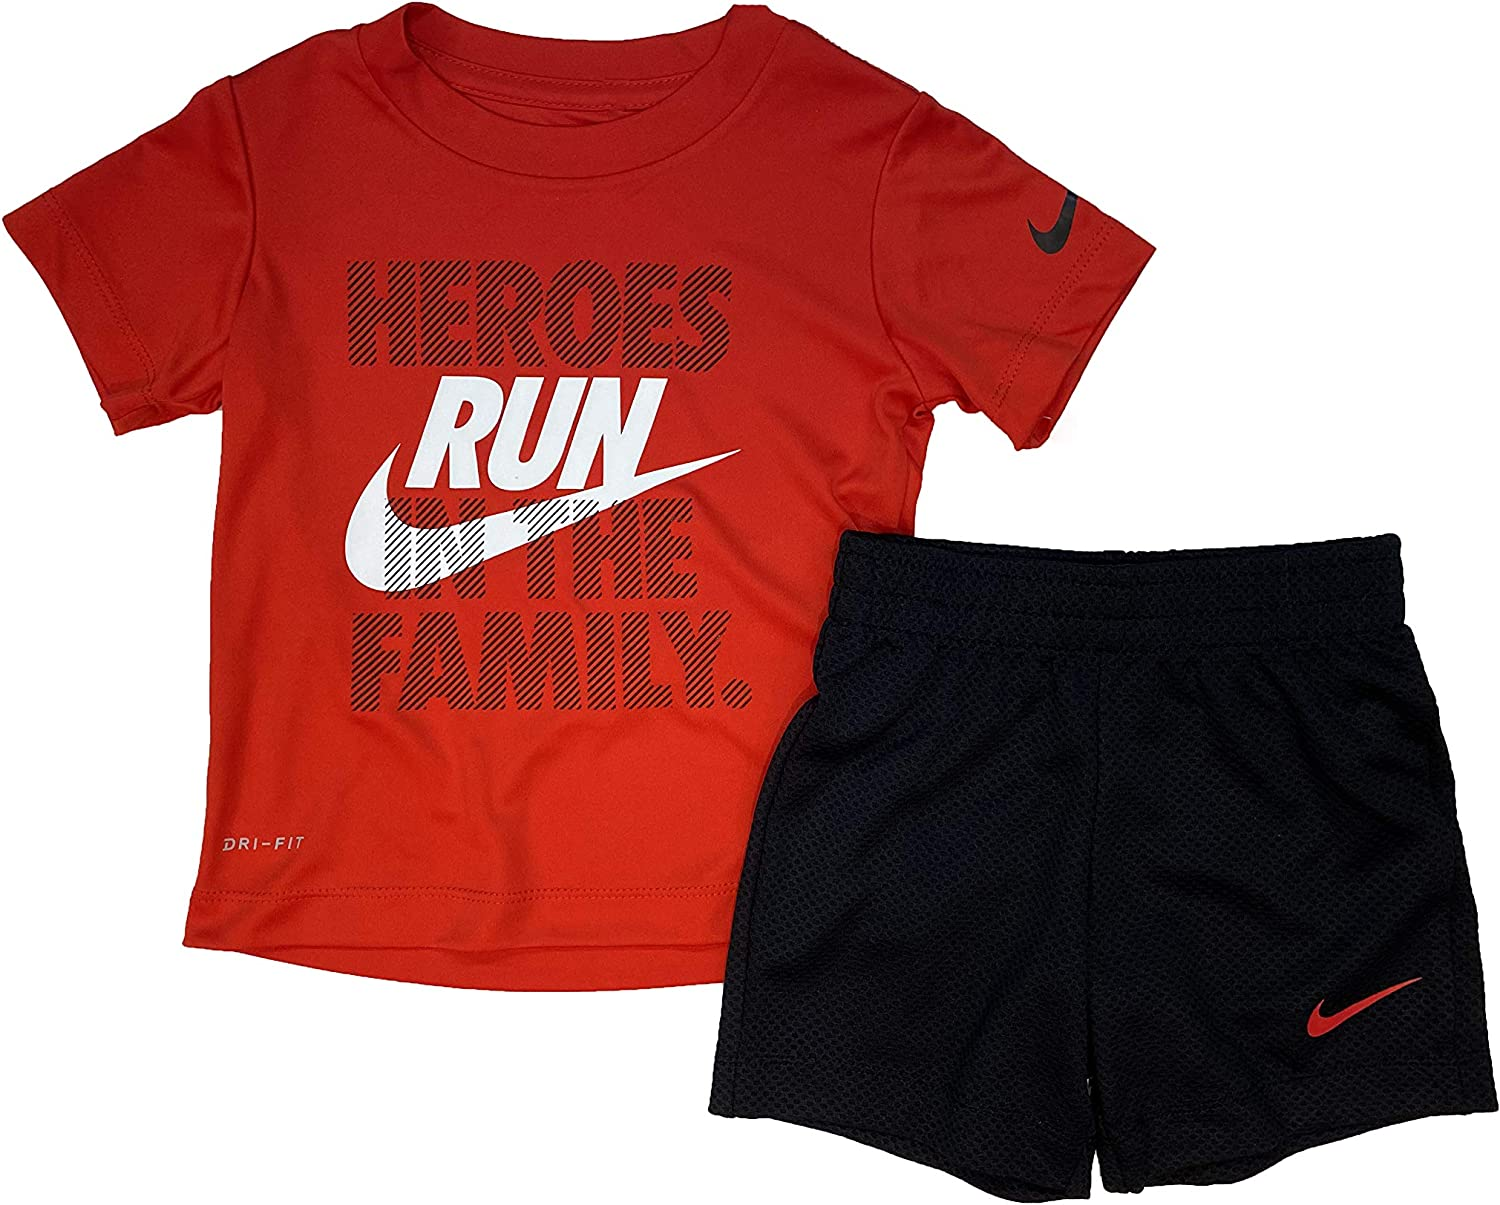 Nike Toddler Boys 2 Piece Shirt and Short Set - Red/Black - 3T